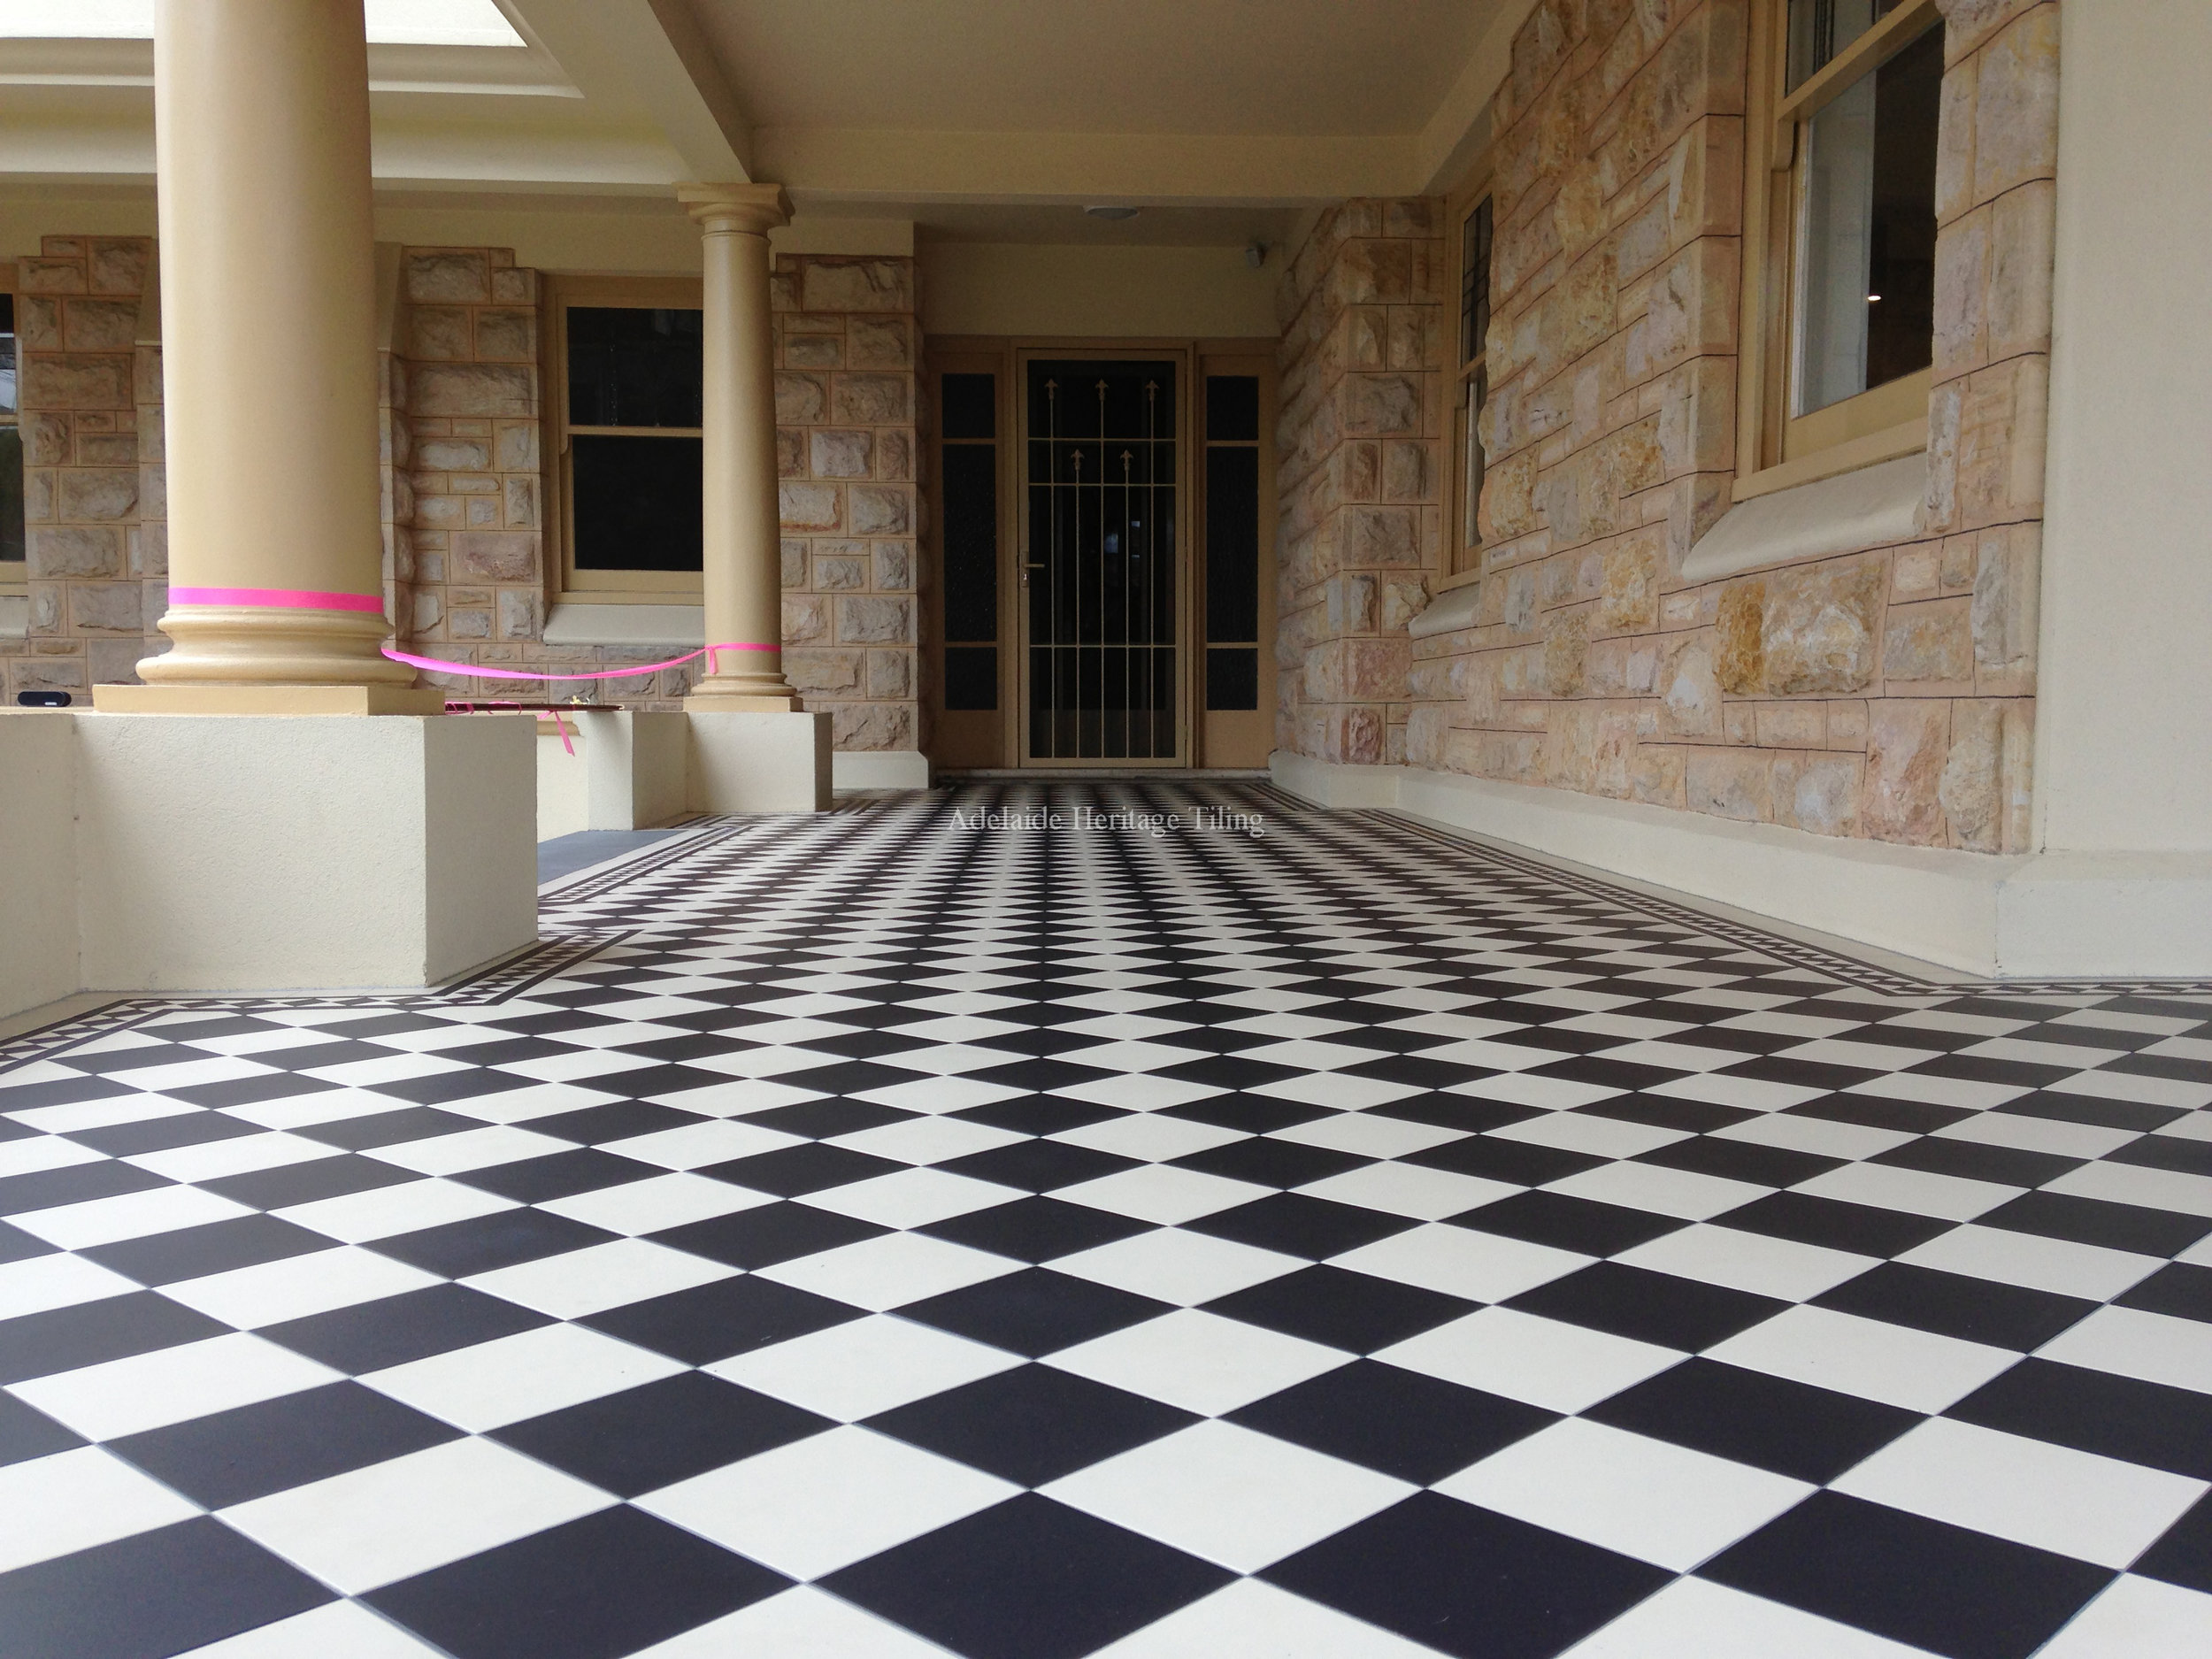 Black and White 150x150mm squares with Norwood Border